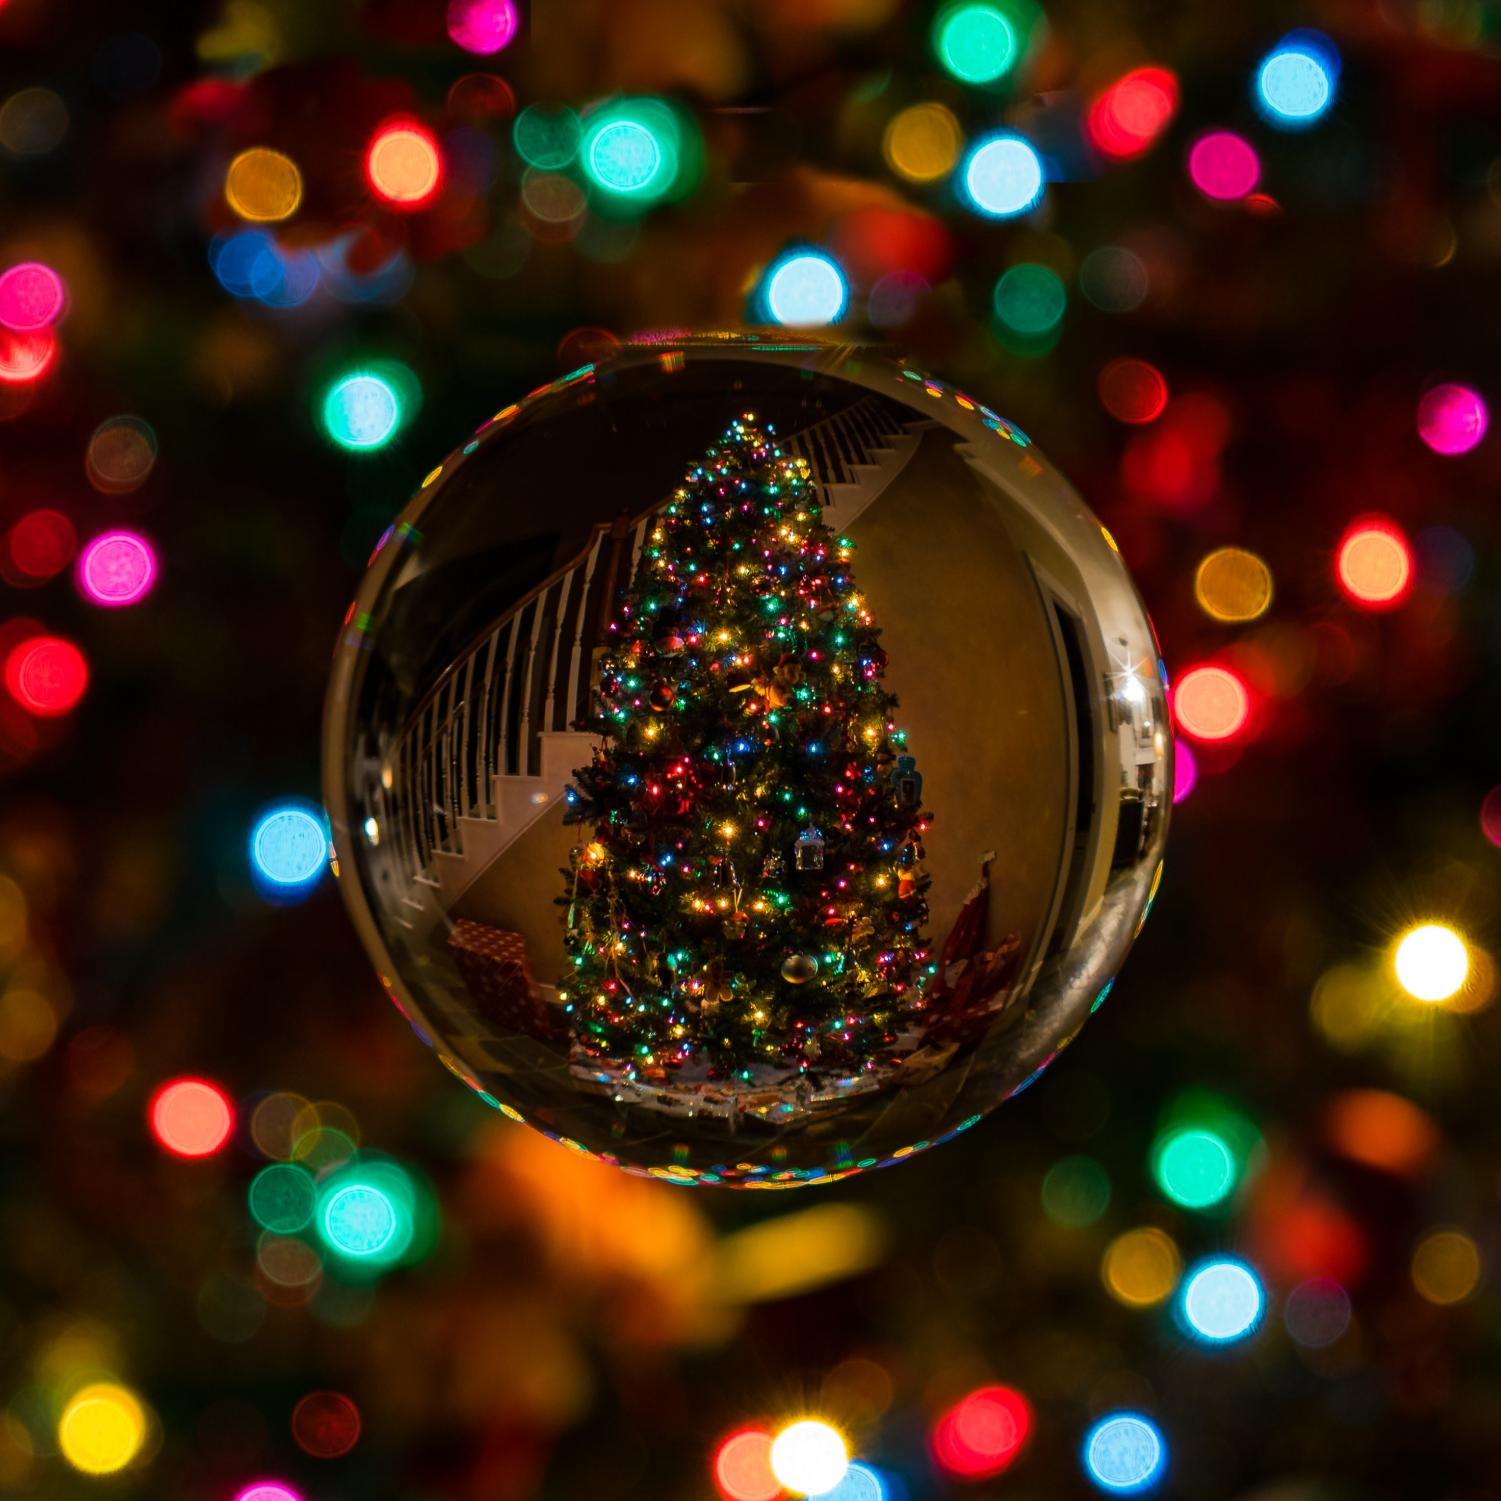 The Christmas tree is one of the most popular decorations put up to celebrate Christmas.